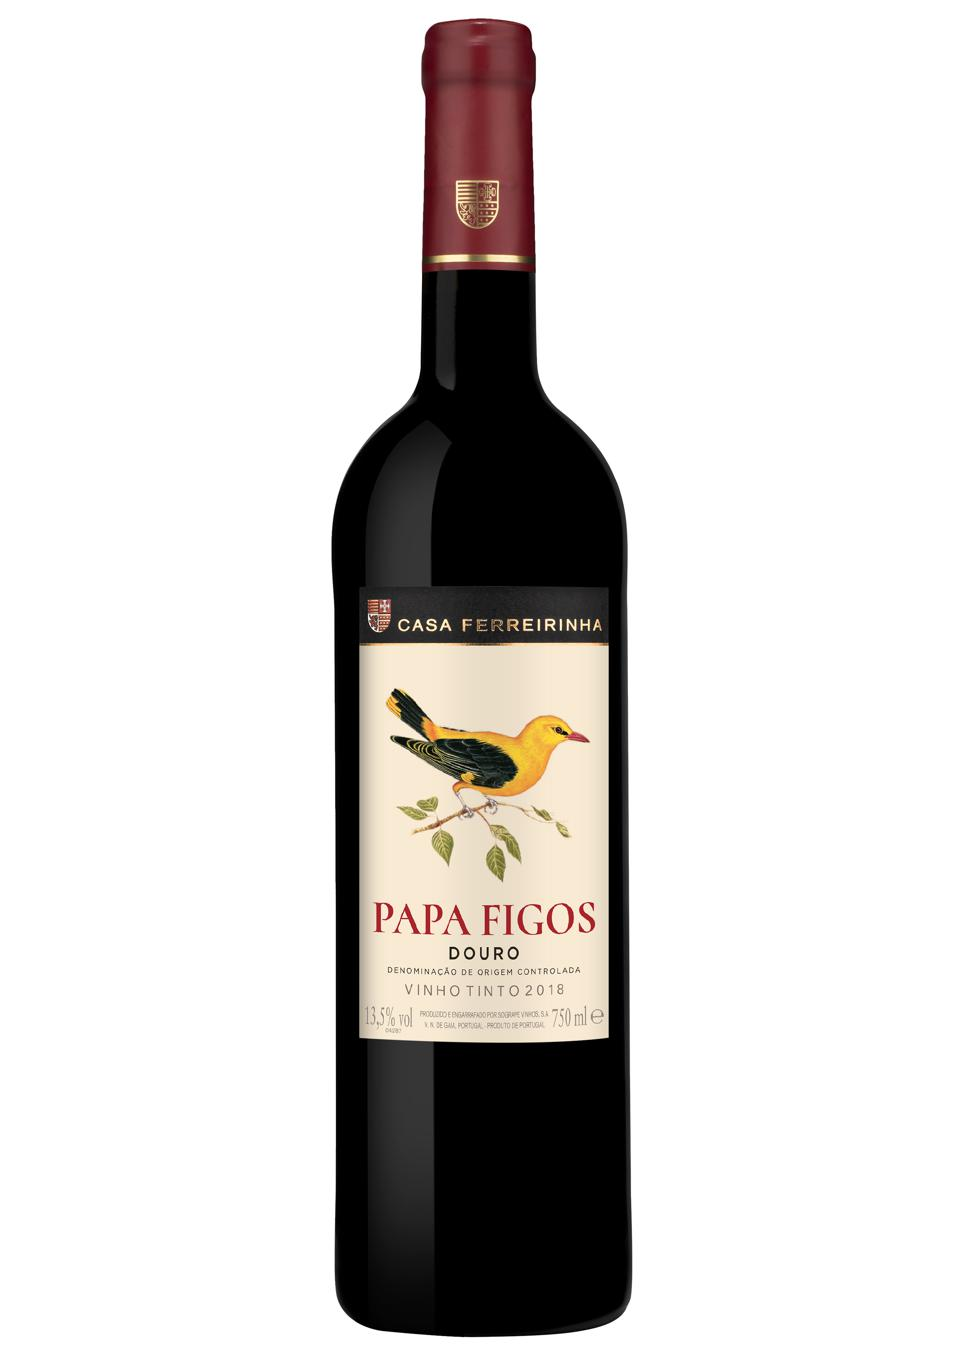 a bottle of red wine made in the Douro Valley in Portugal with local grapes